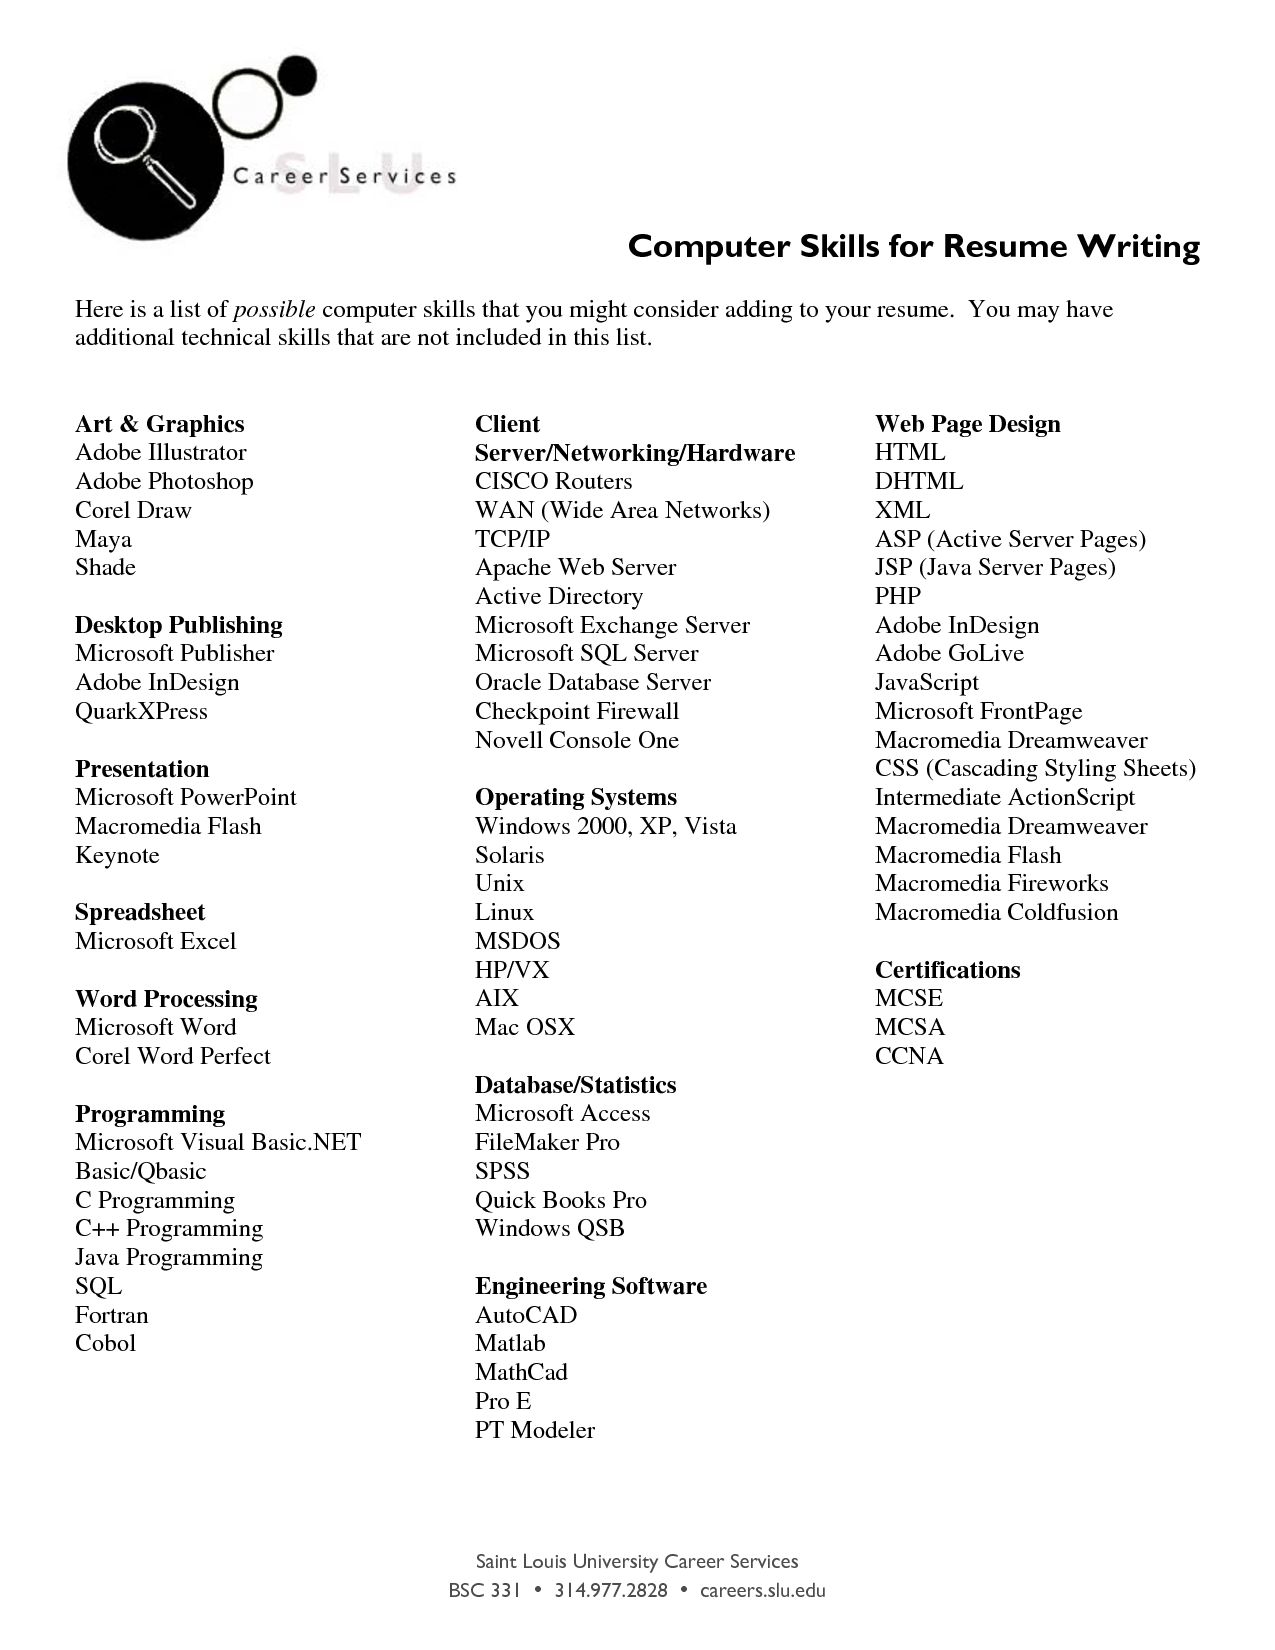 sample resume technical skills list